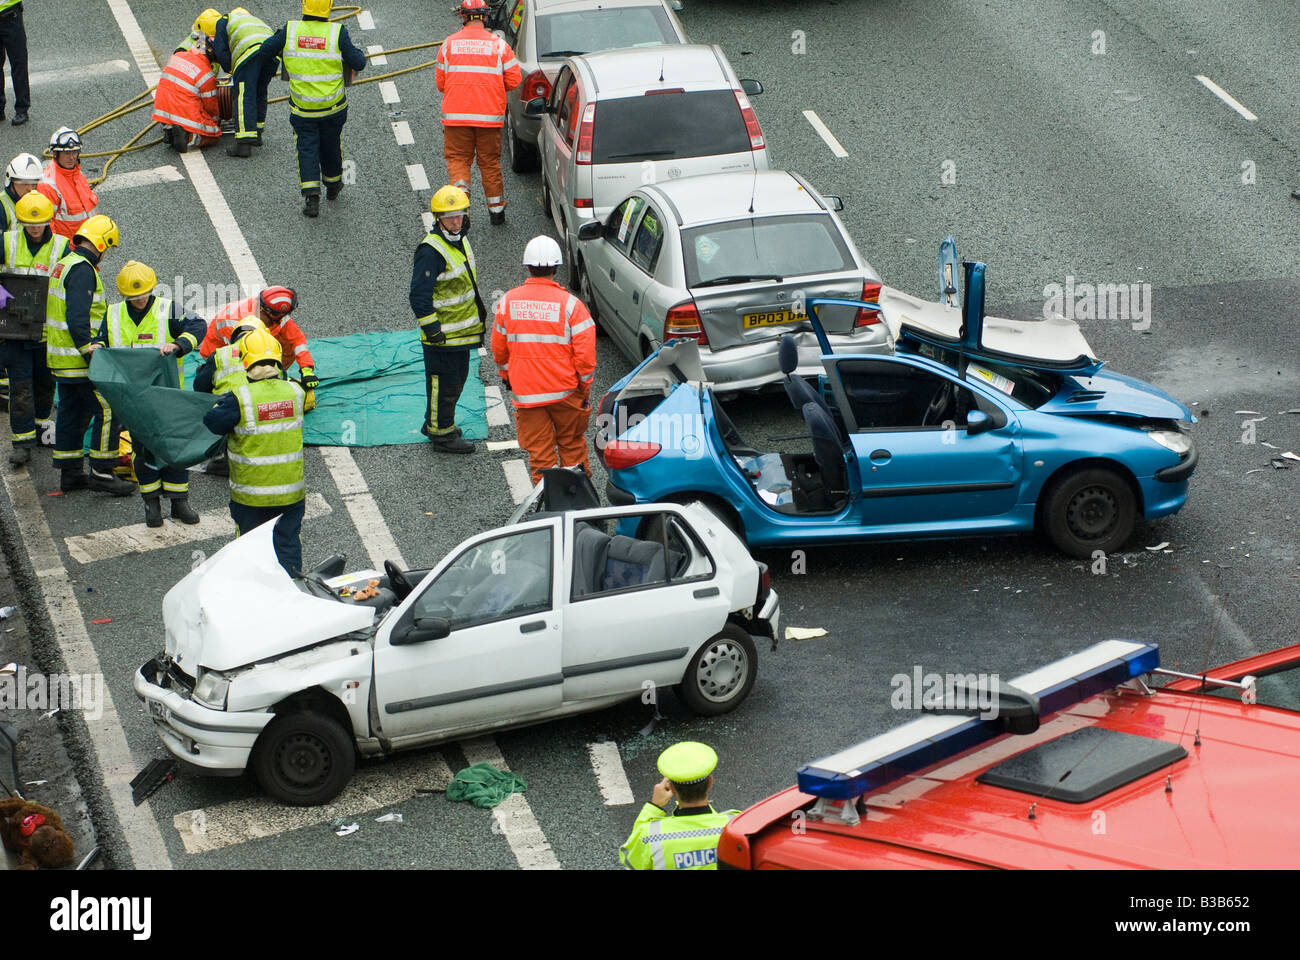 Crash On Motorway Stock Photos & Crash On Motorway Stock